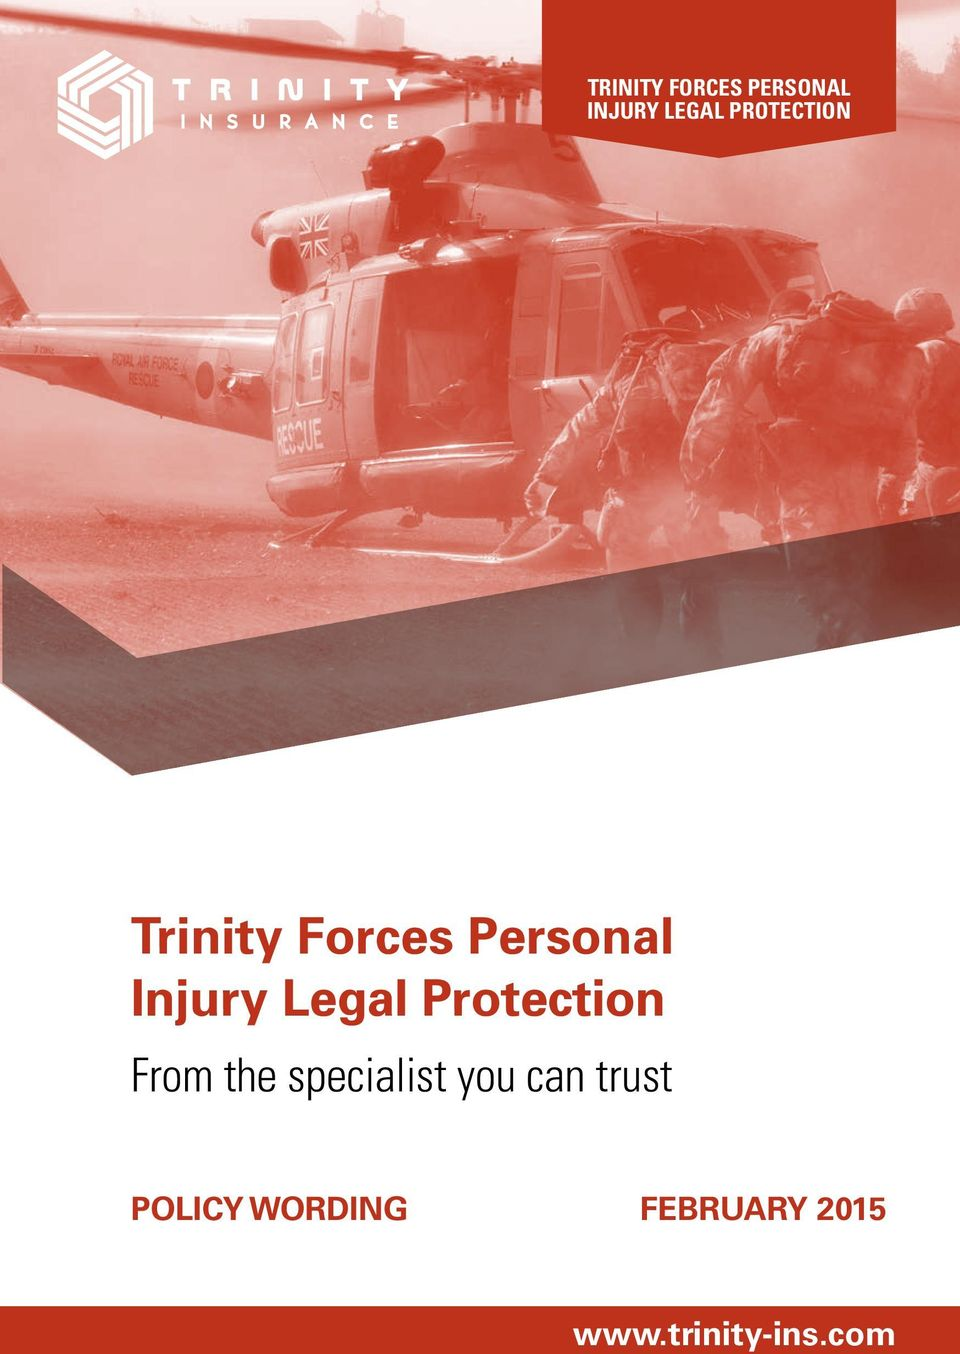 Legal Protection From the specialist you can